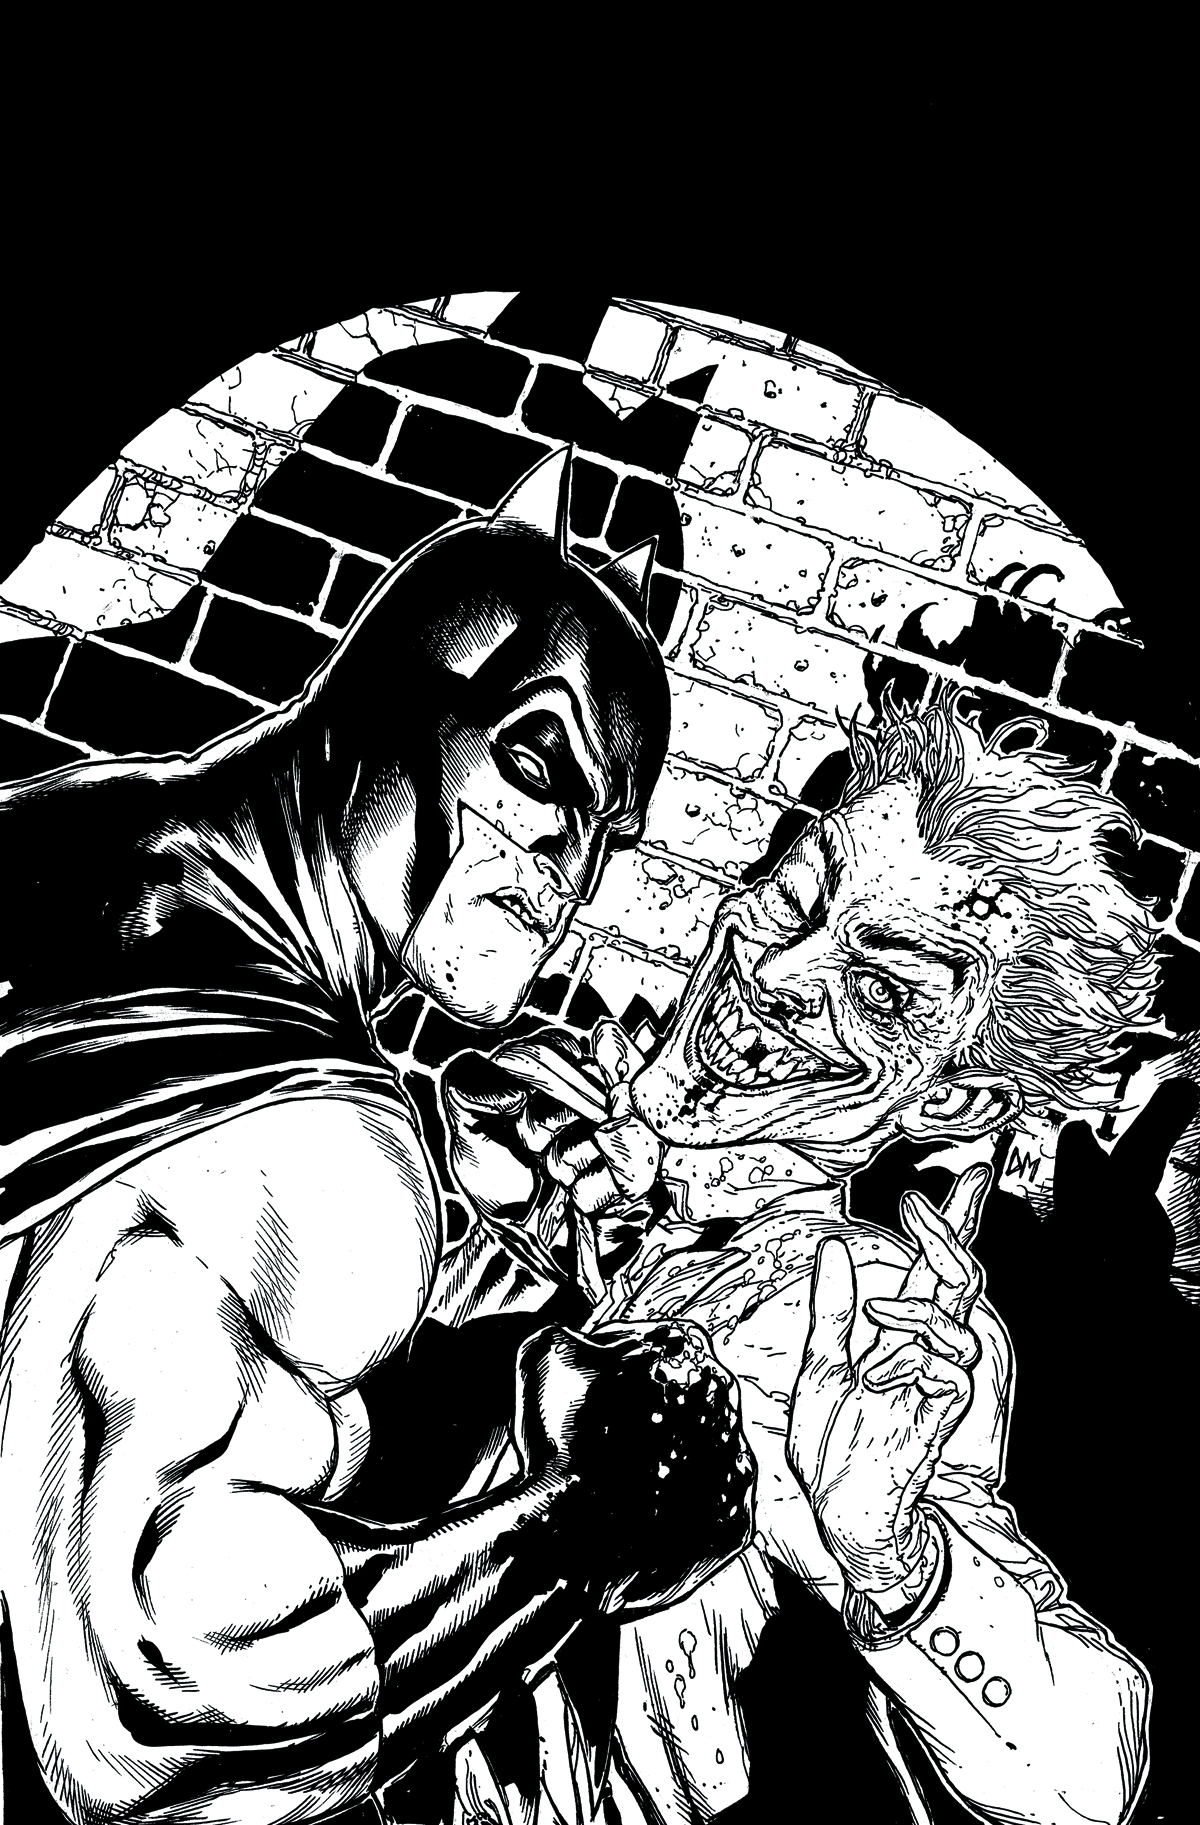 BATMAN BLACK & WHITE #6 (OF 6)